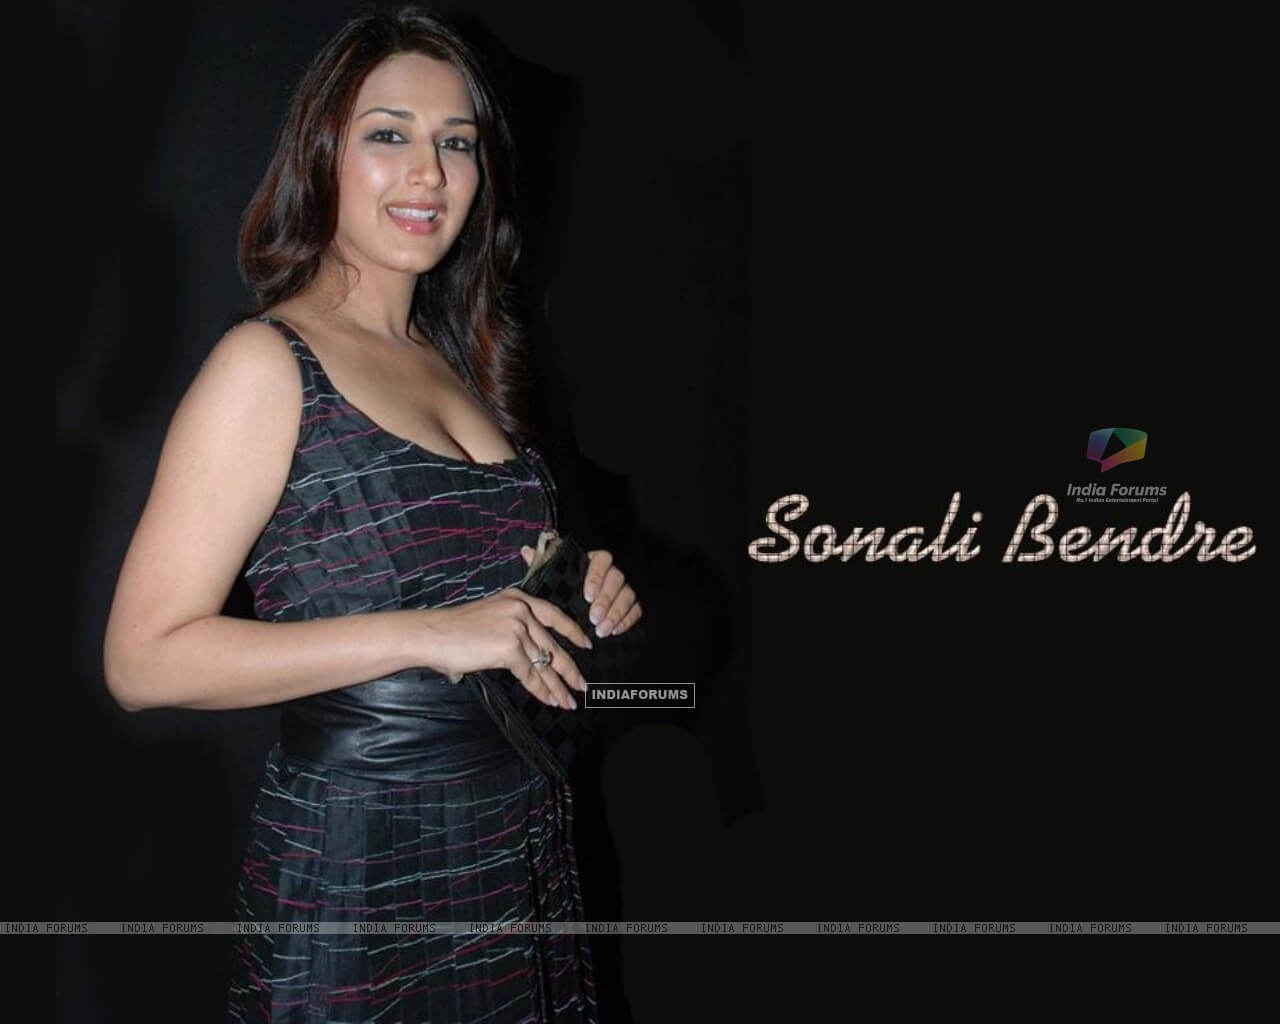 Sonali Bendre Cancer, Death, Photos(image), Family, Husband, Biography, Date Of Birth, Movies, Latest News, Haircut, Net Worth, Married, Education, Son, Awards, Instagram, Wiki, Twitter, Faceb ( (50)